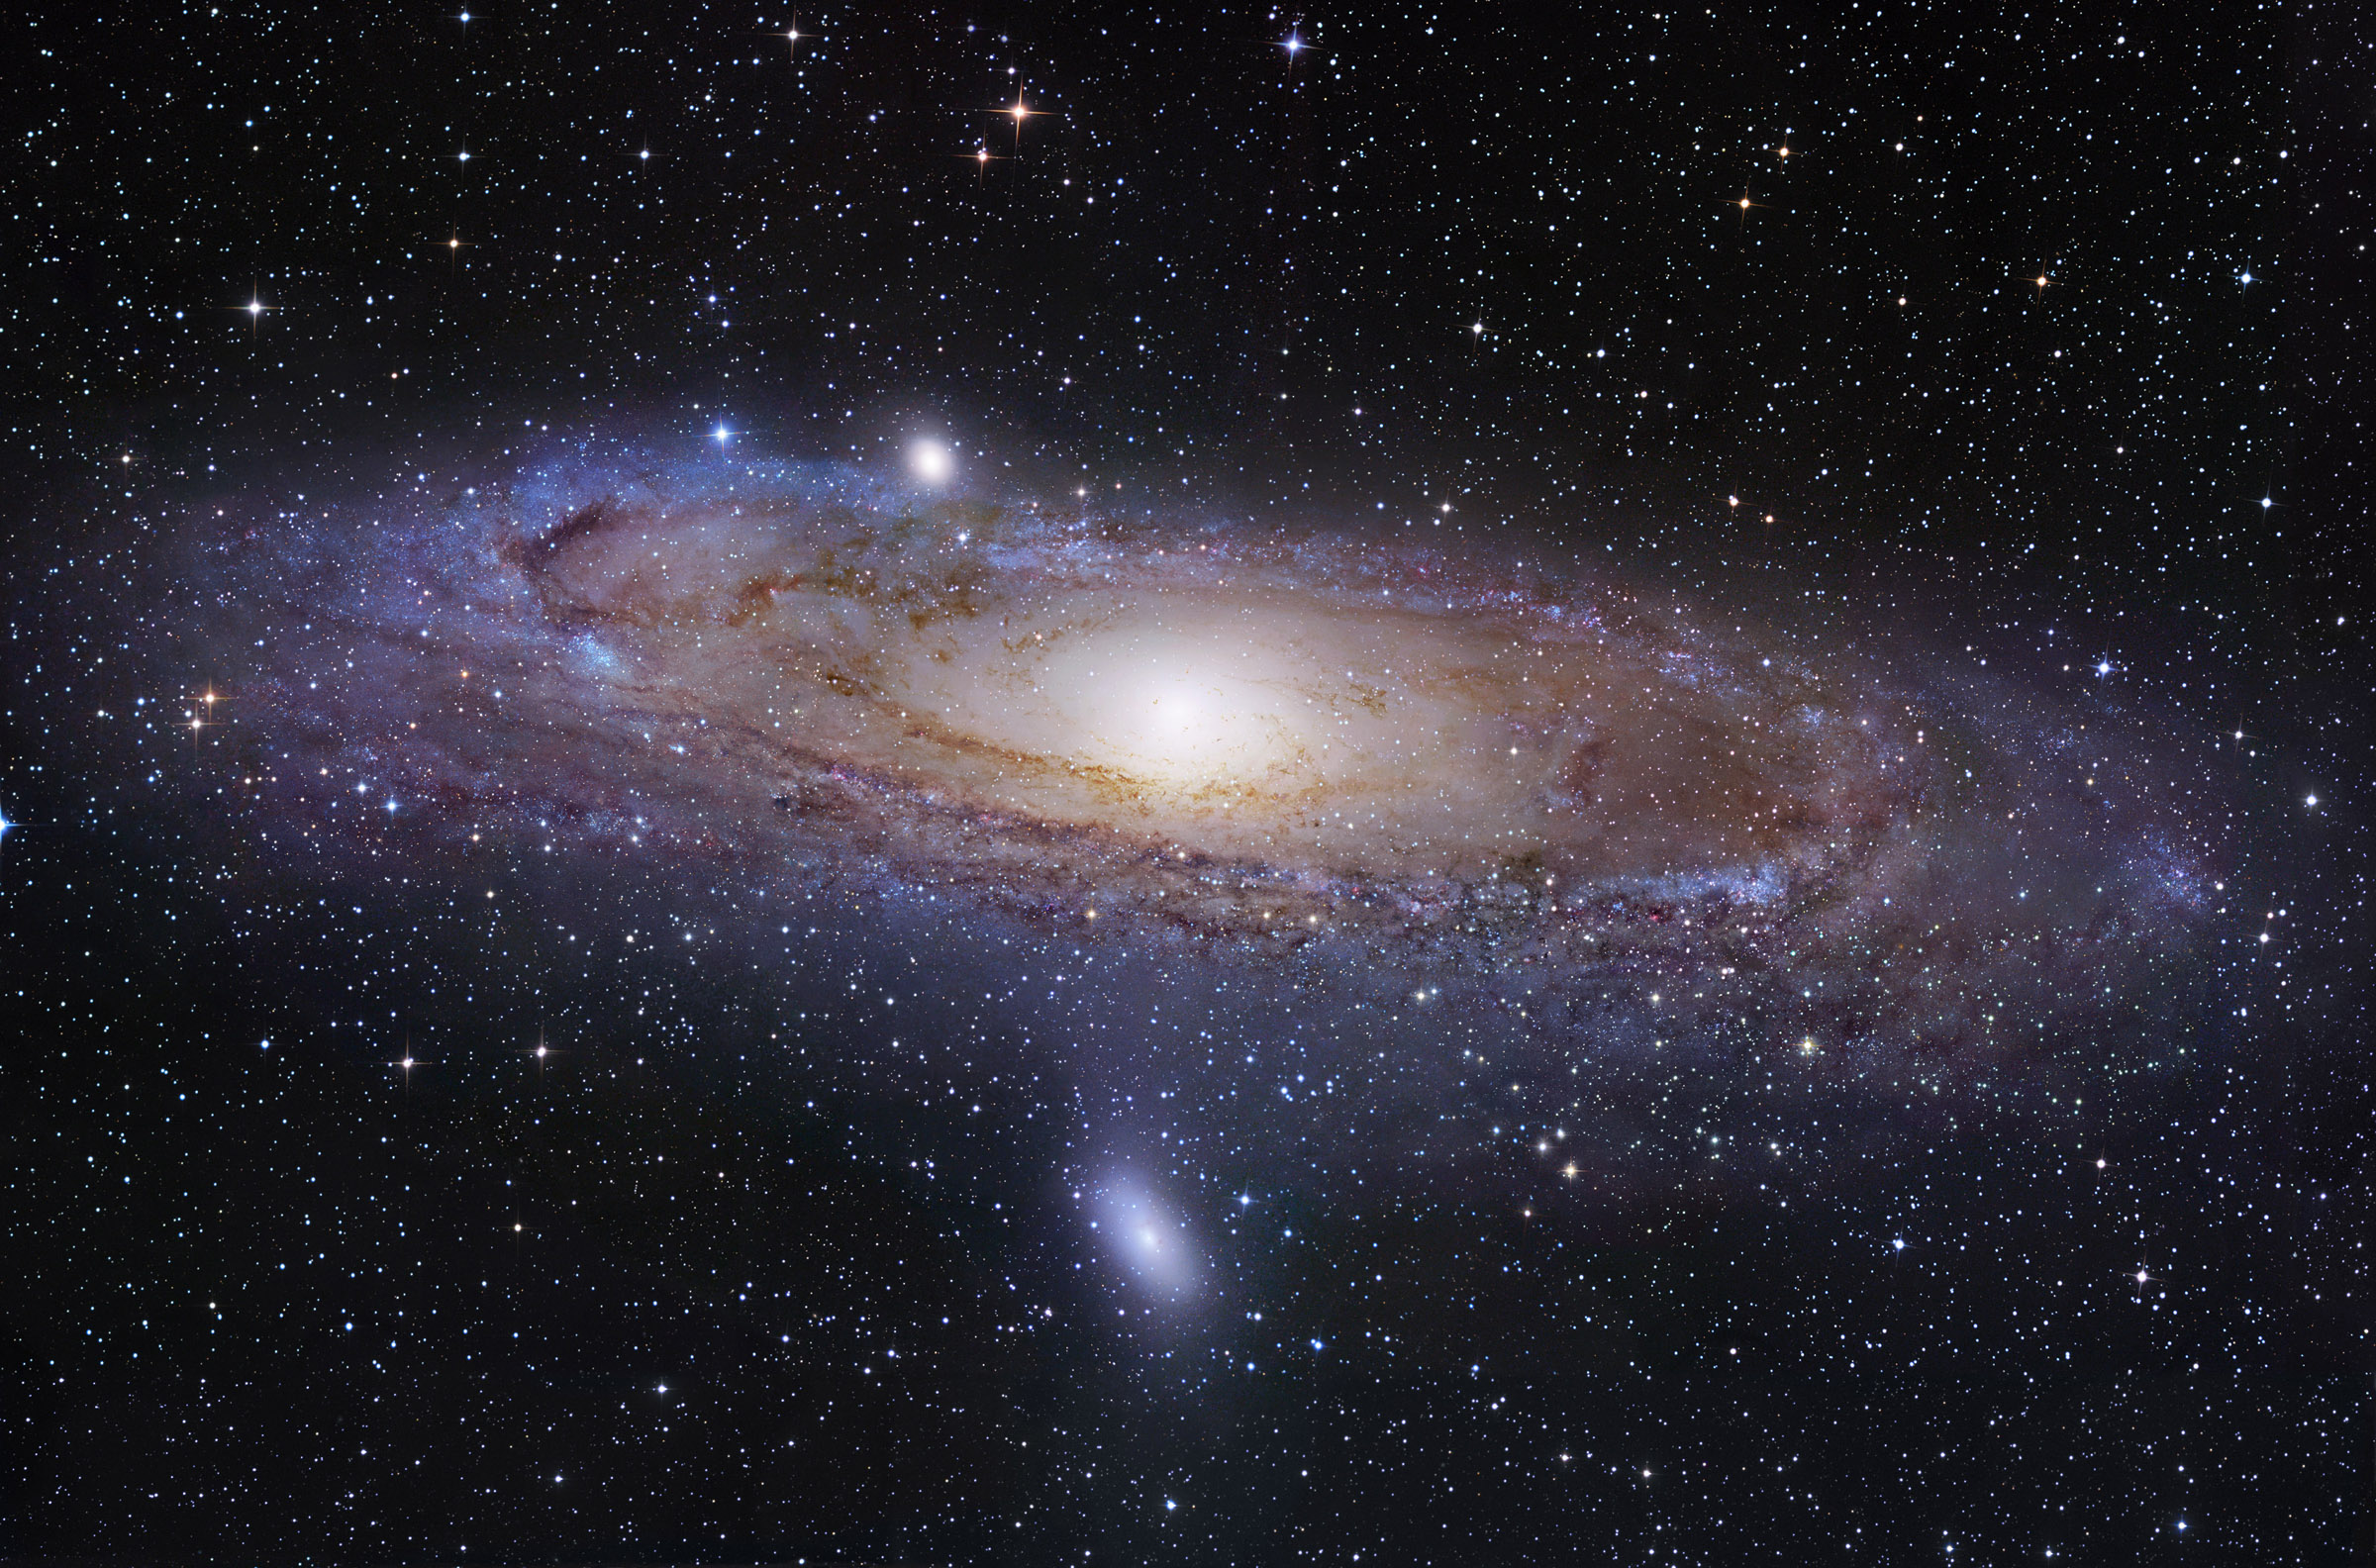 The Andromeda galaxy, shown here, is the closest spiral galaxy to our own spiral, the Milky Way. Astronomers at the University of Utah and elsewhere have launched the Andromeda Project so thousands of volunteers can help them find star clusters in detailed images of Andromeda made by the Hubble Space Telescope.